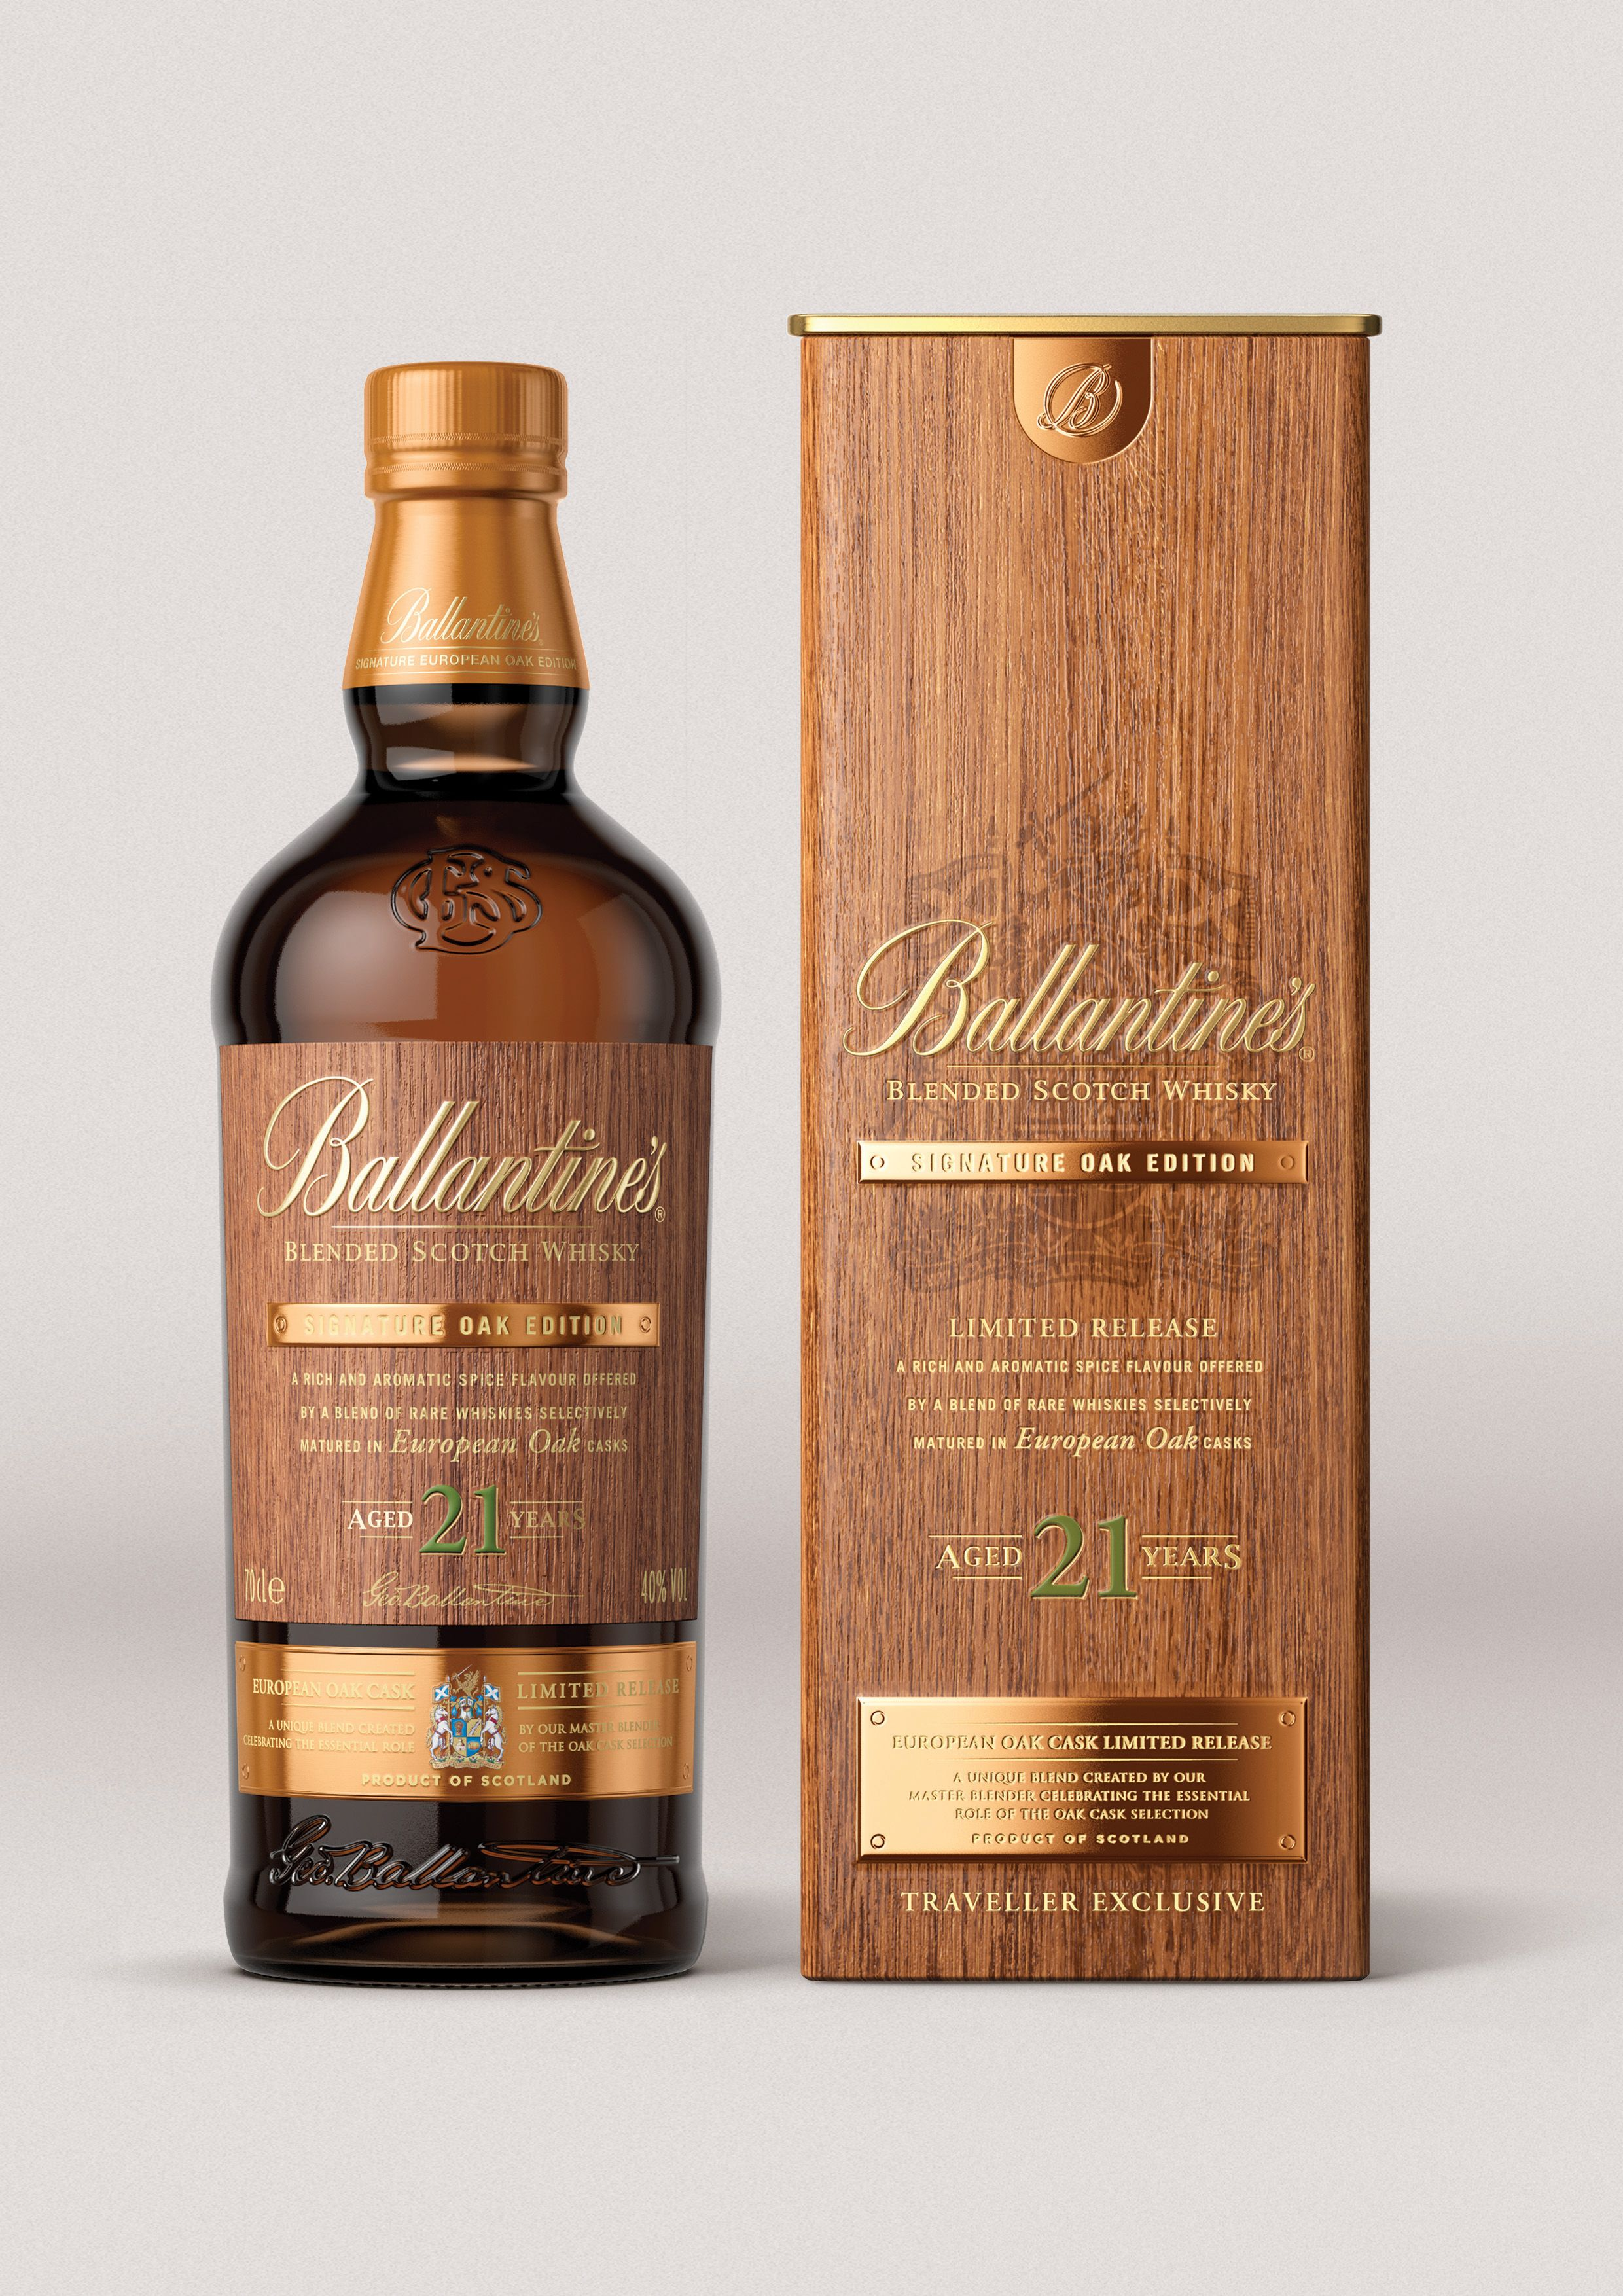 Pin On Worlds Whisk E Ys And Bourbons